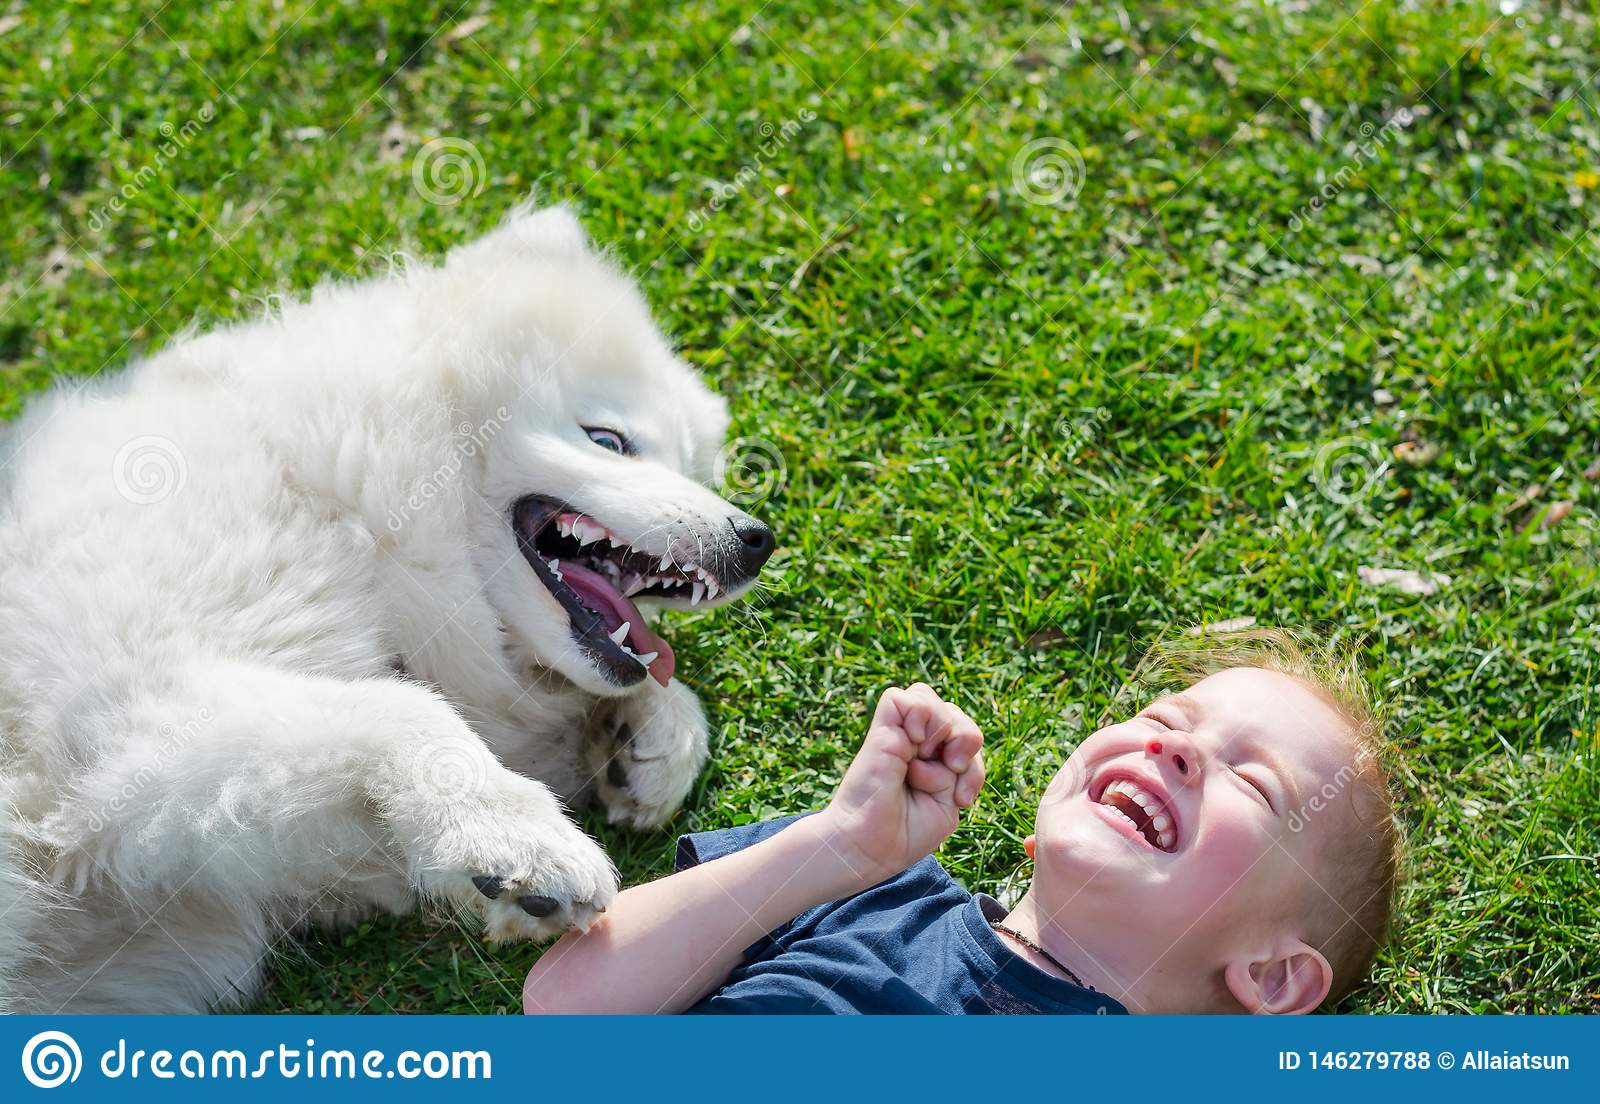 The boy laughs lying with a white dog in the park on the grass in spring